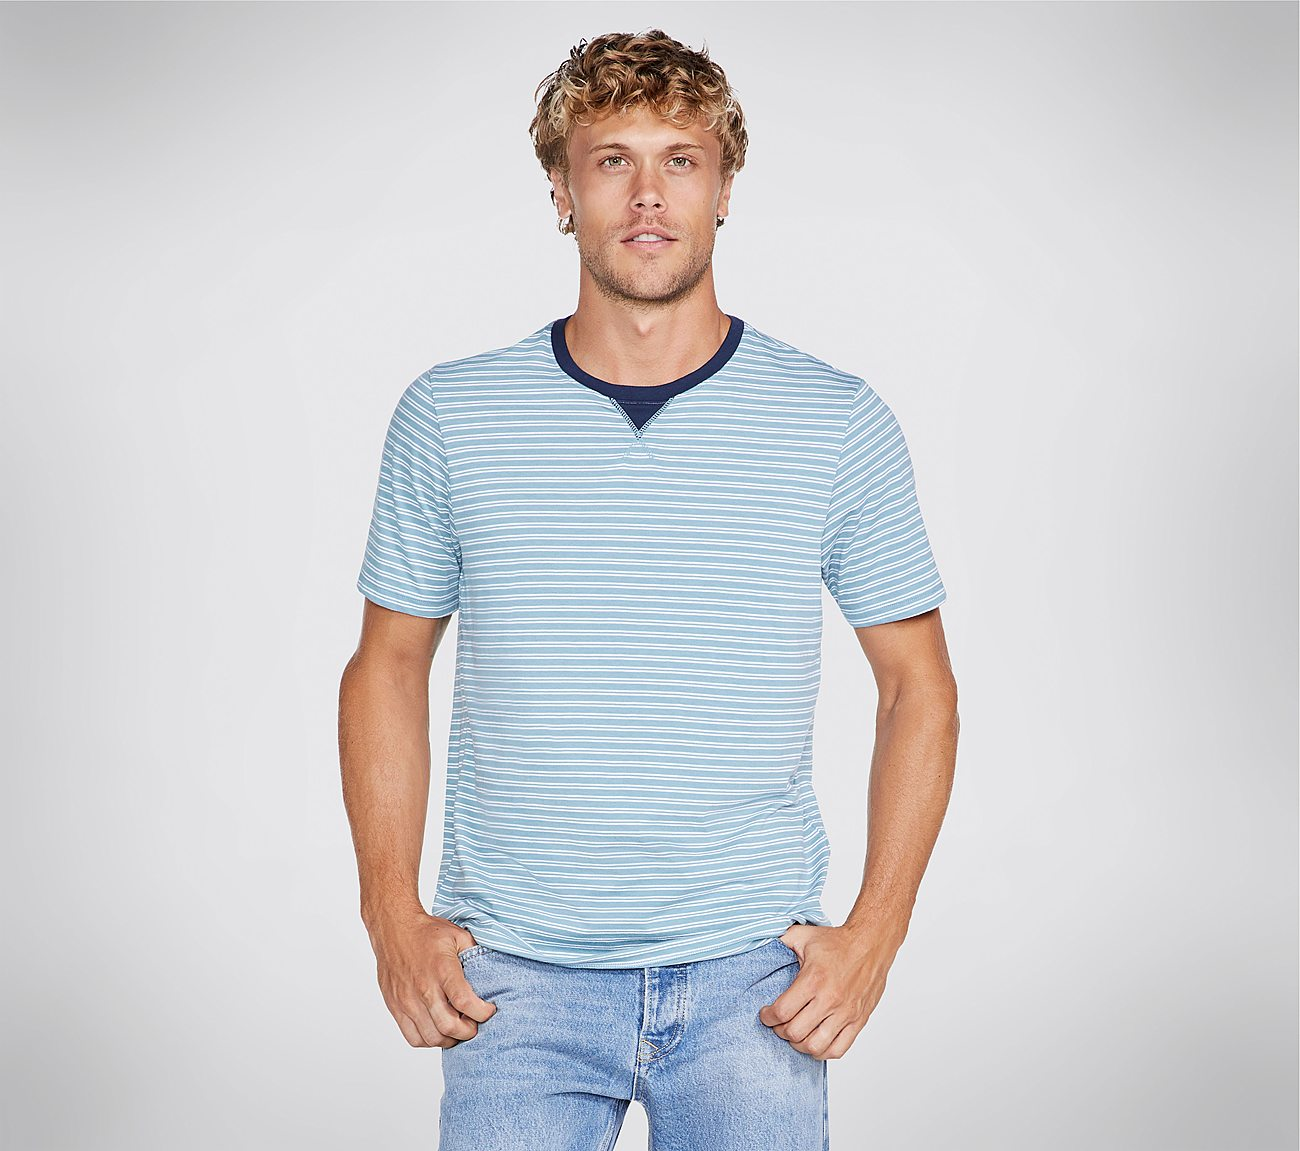 Skechers Apparel Connection Tee Shirt